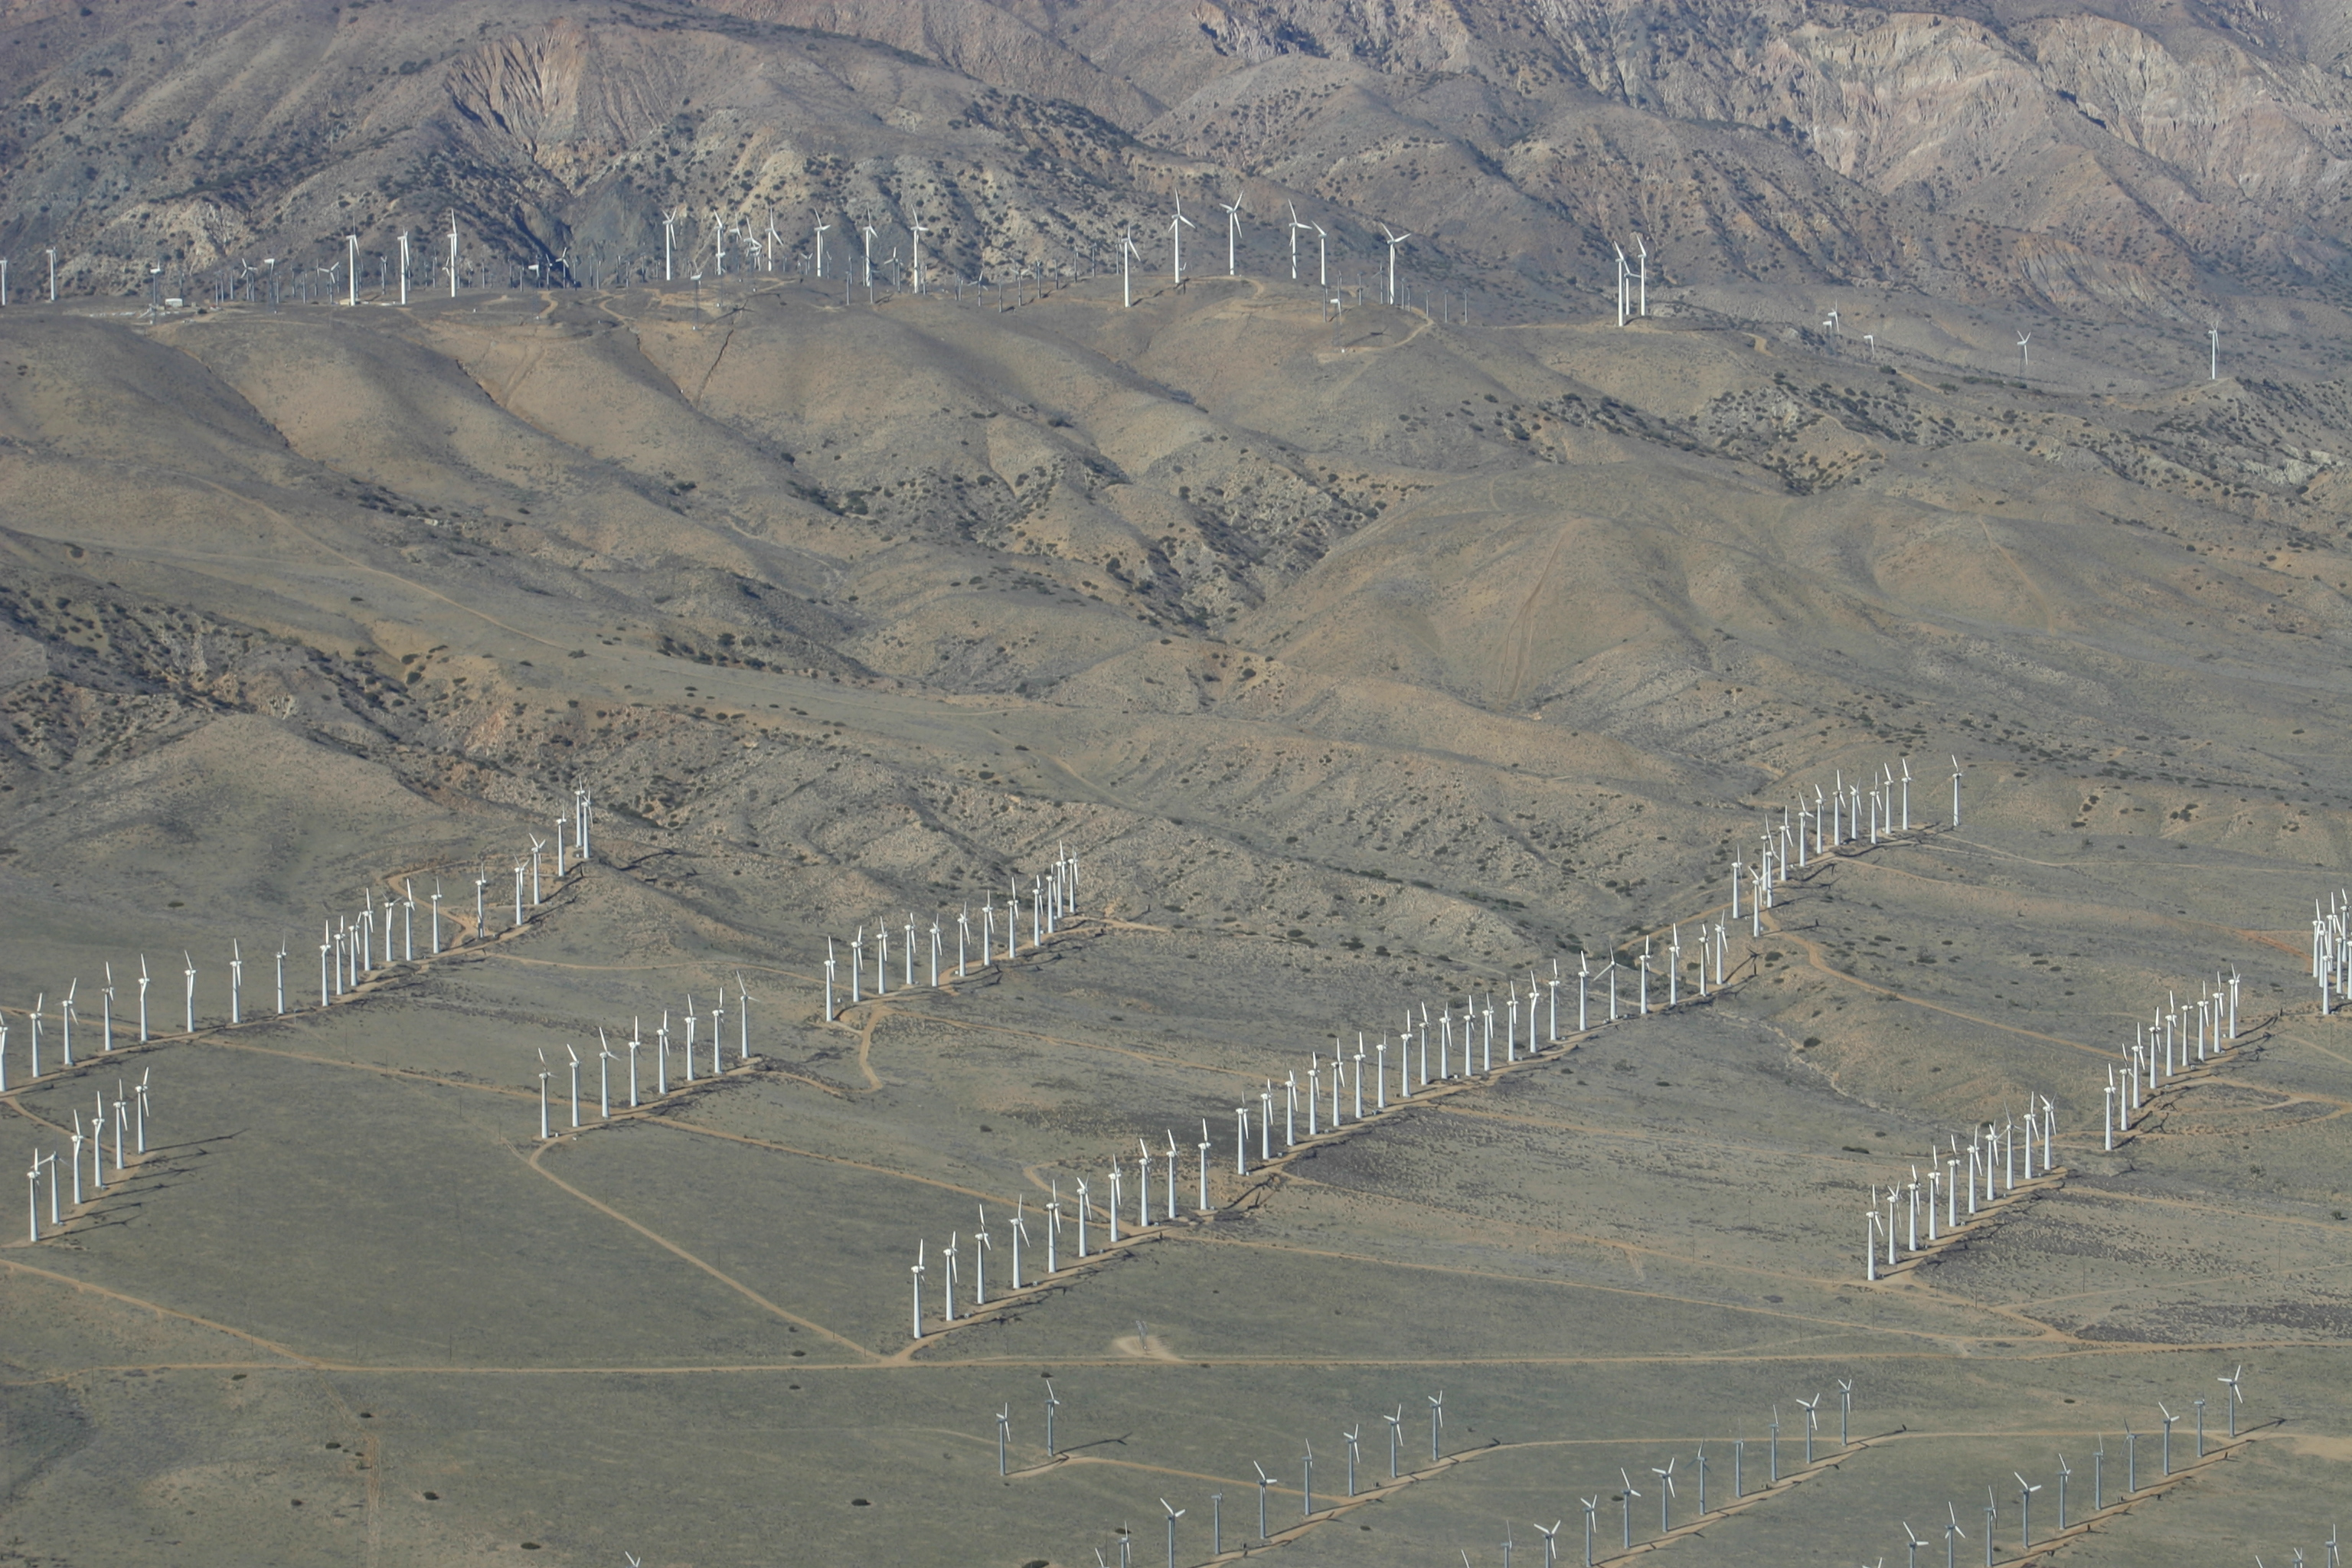 https://upload.wikimedia.org/wikipedia/commons/8/86/Kluft-photo-Tehachapi-Wind-Farm-Feb-2008-Img_0437.jpg